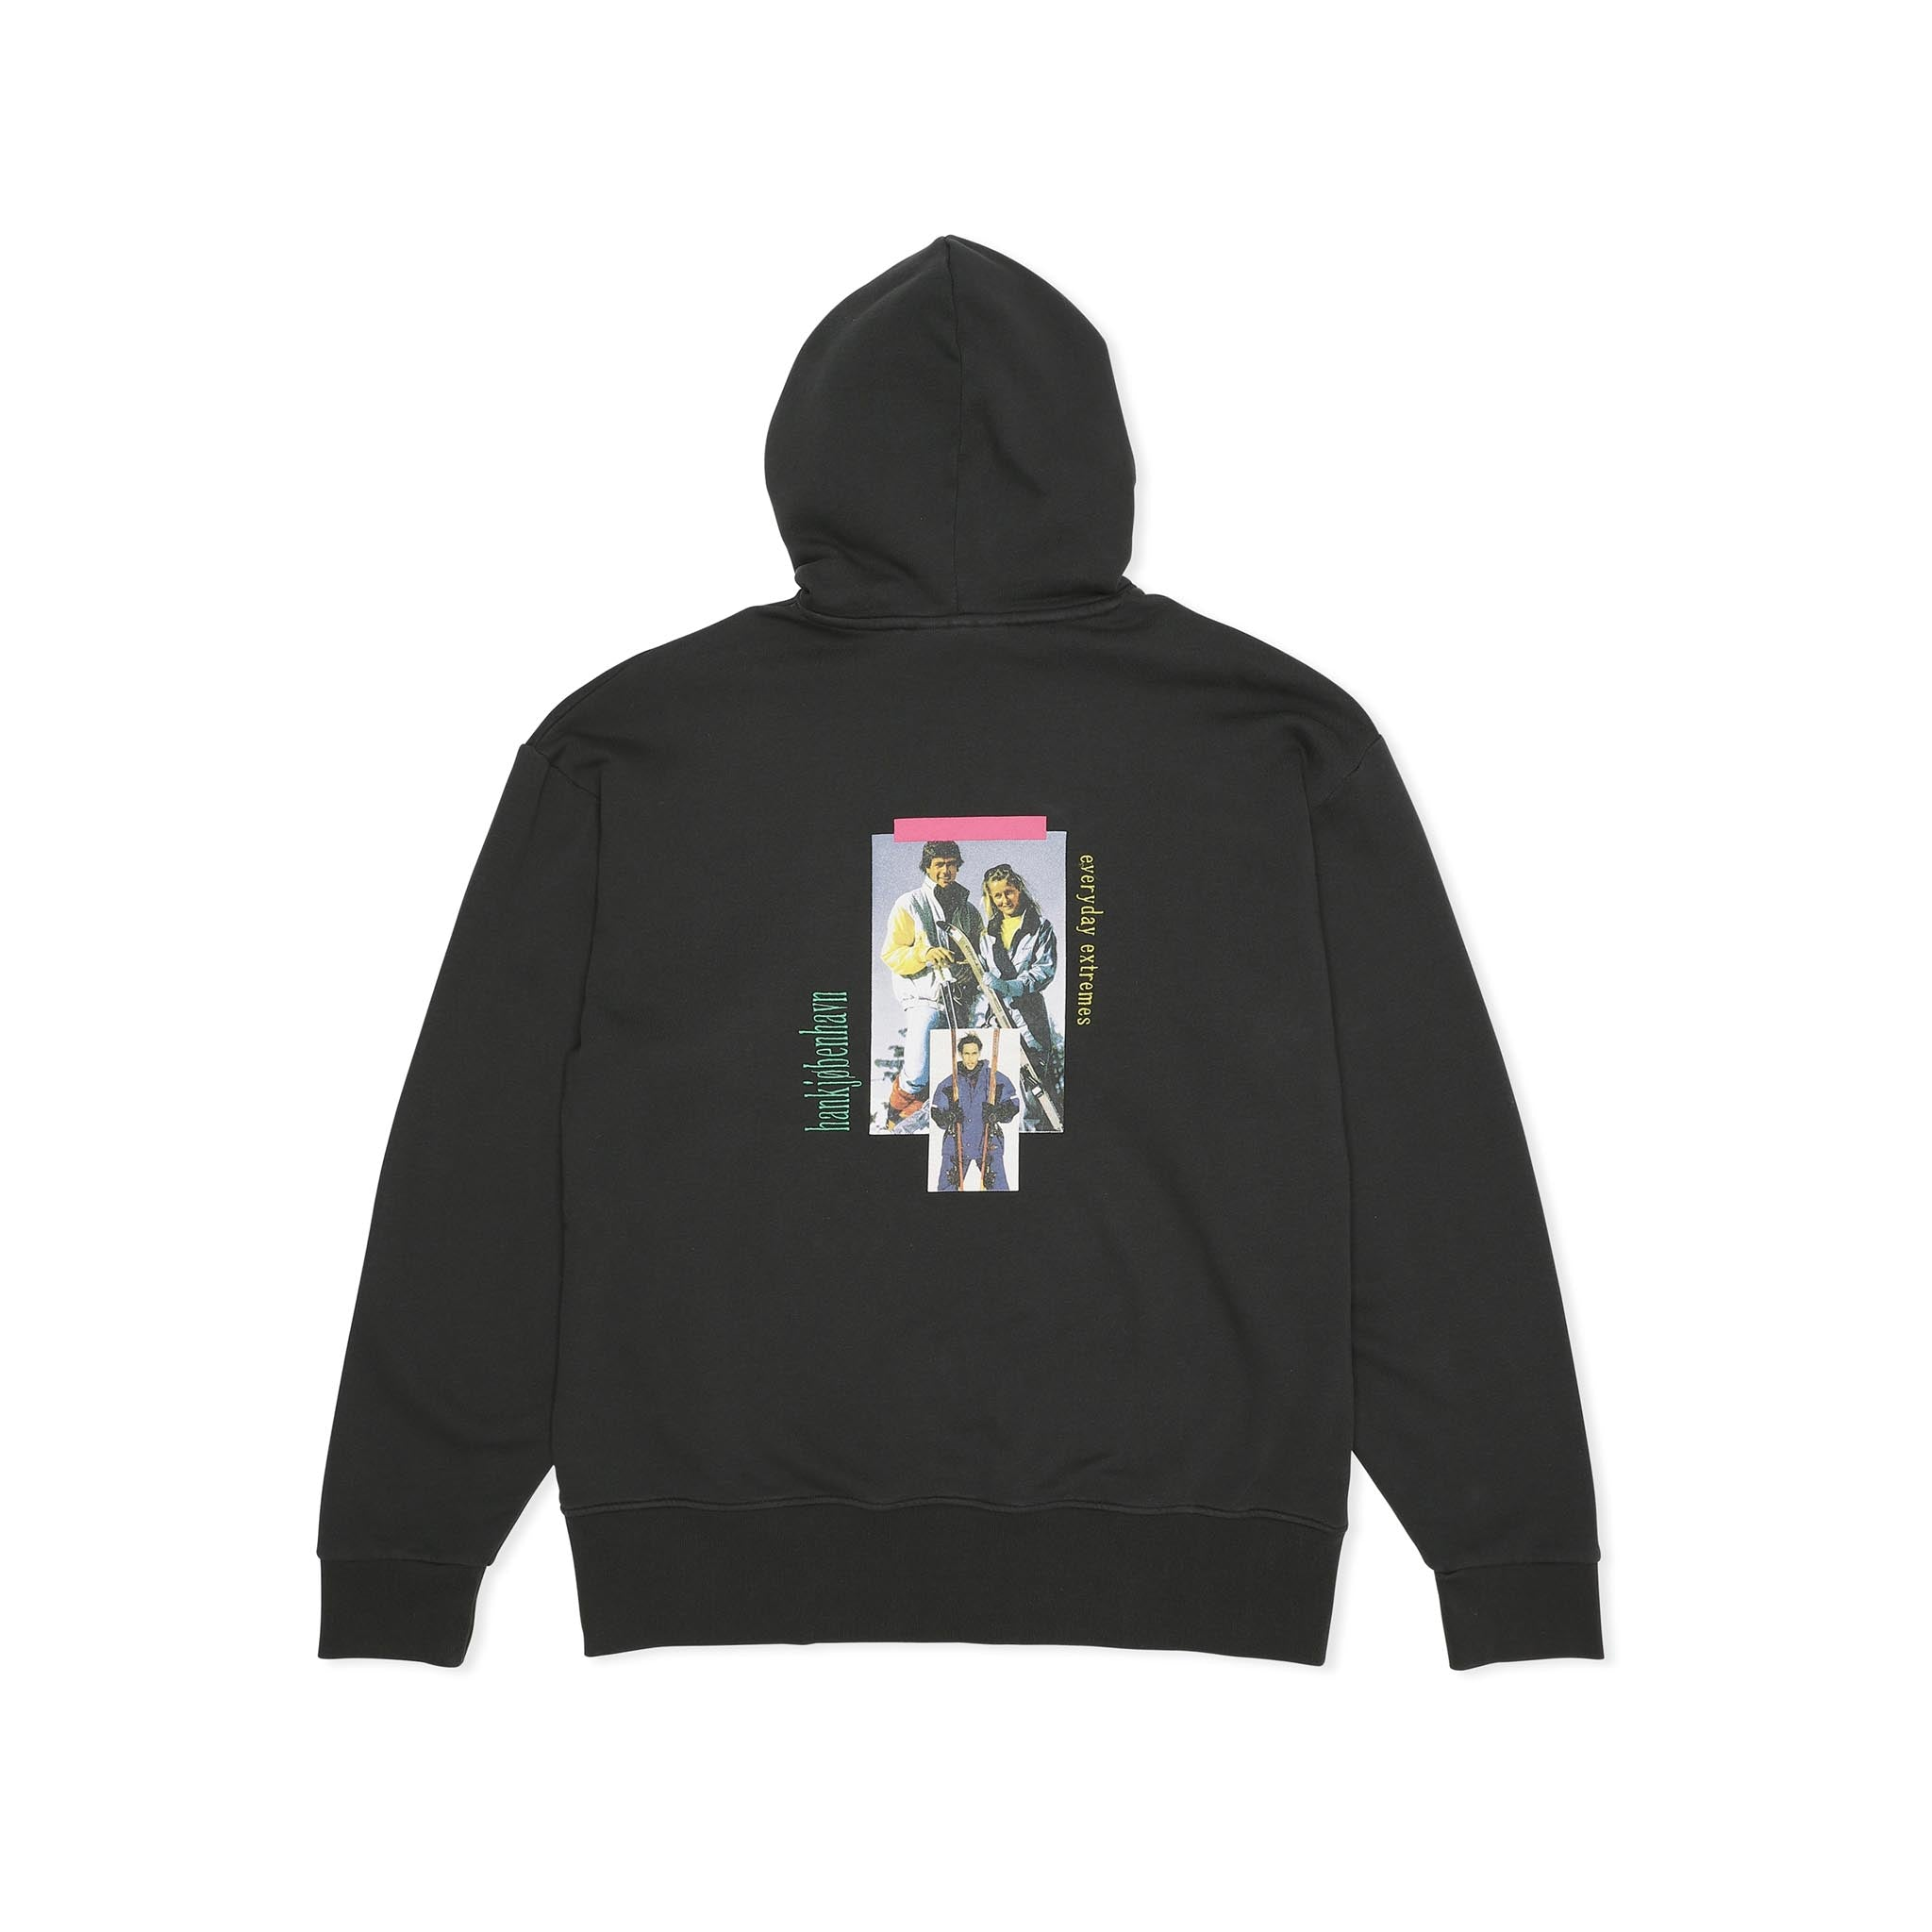 Han Kjobenhavn 'Everyday Extremes' Bulky Hoodie Faded Black